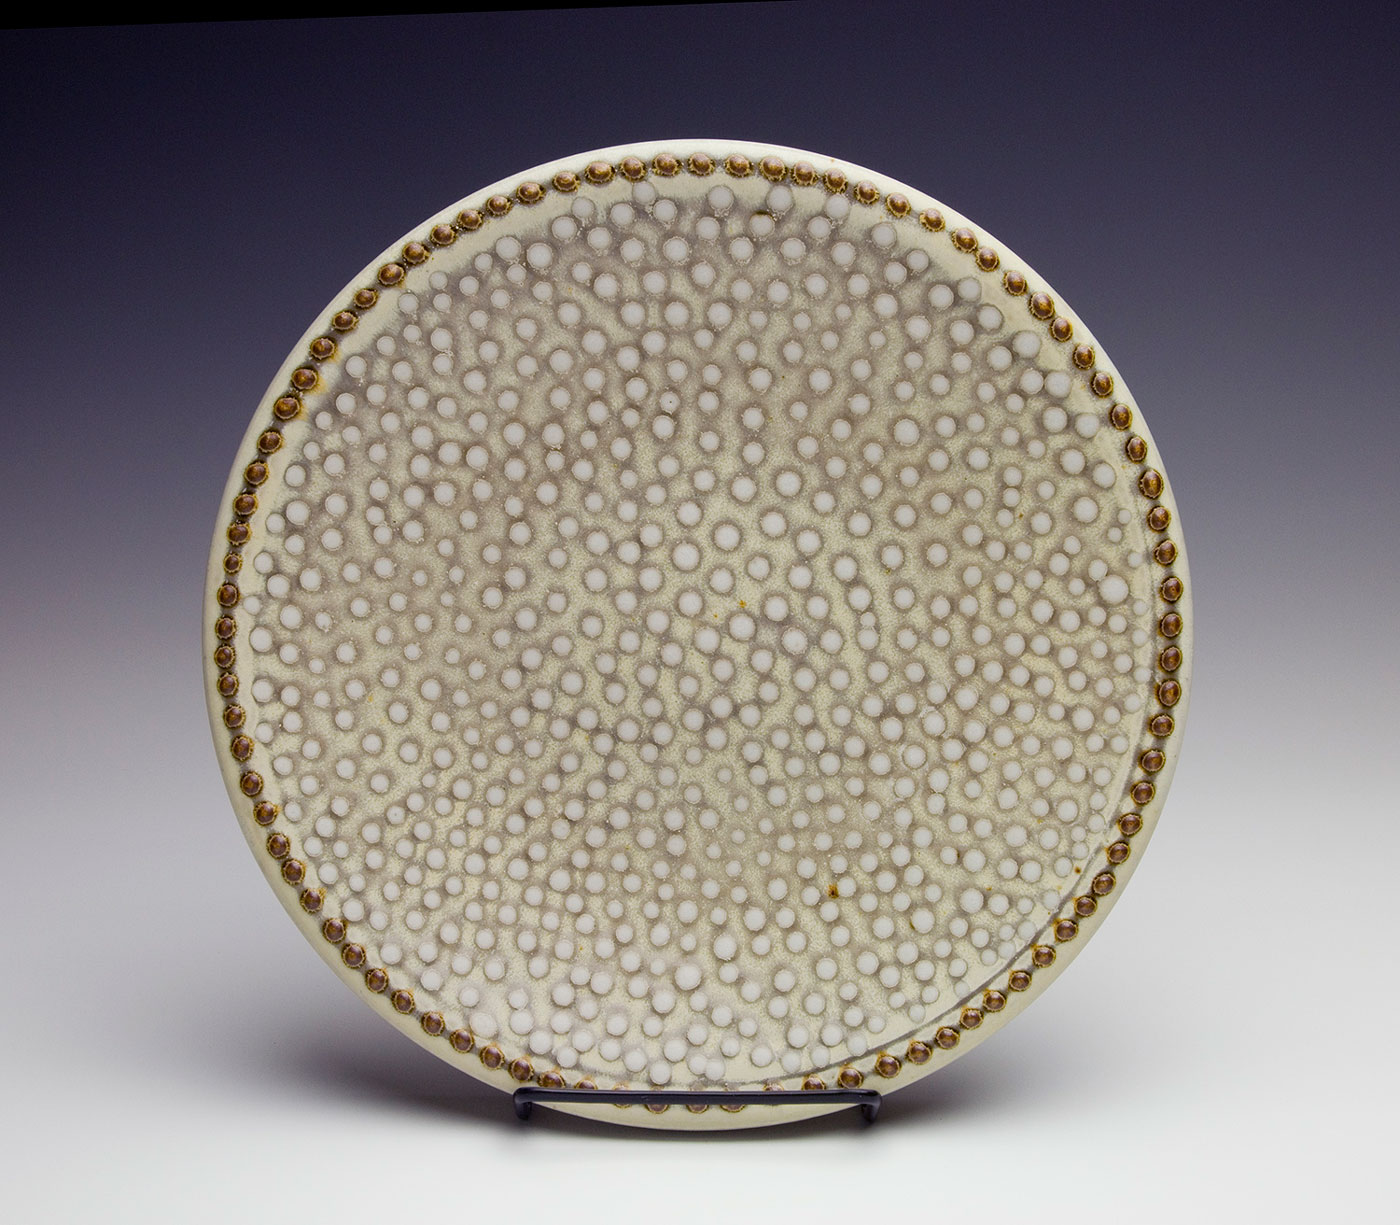 Plate-with-white-dots-Samantha-Henneke-Seagrove-Pottery.jpg